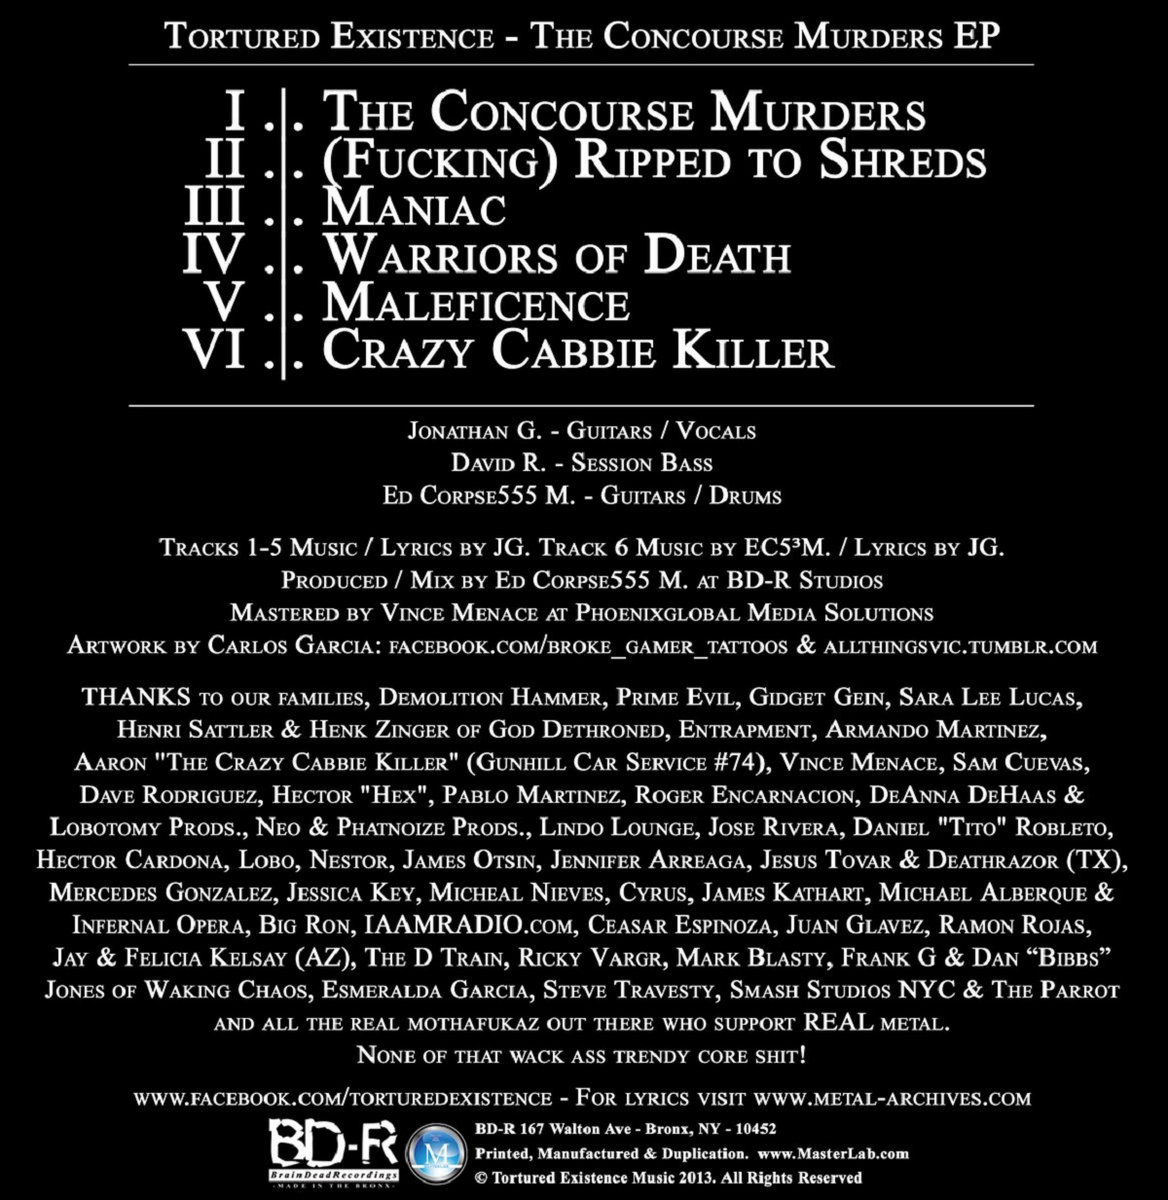 The Concourse Murders | Tortured Existence